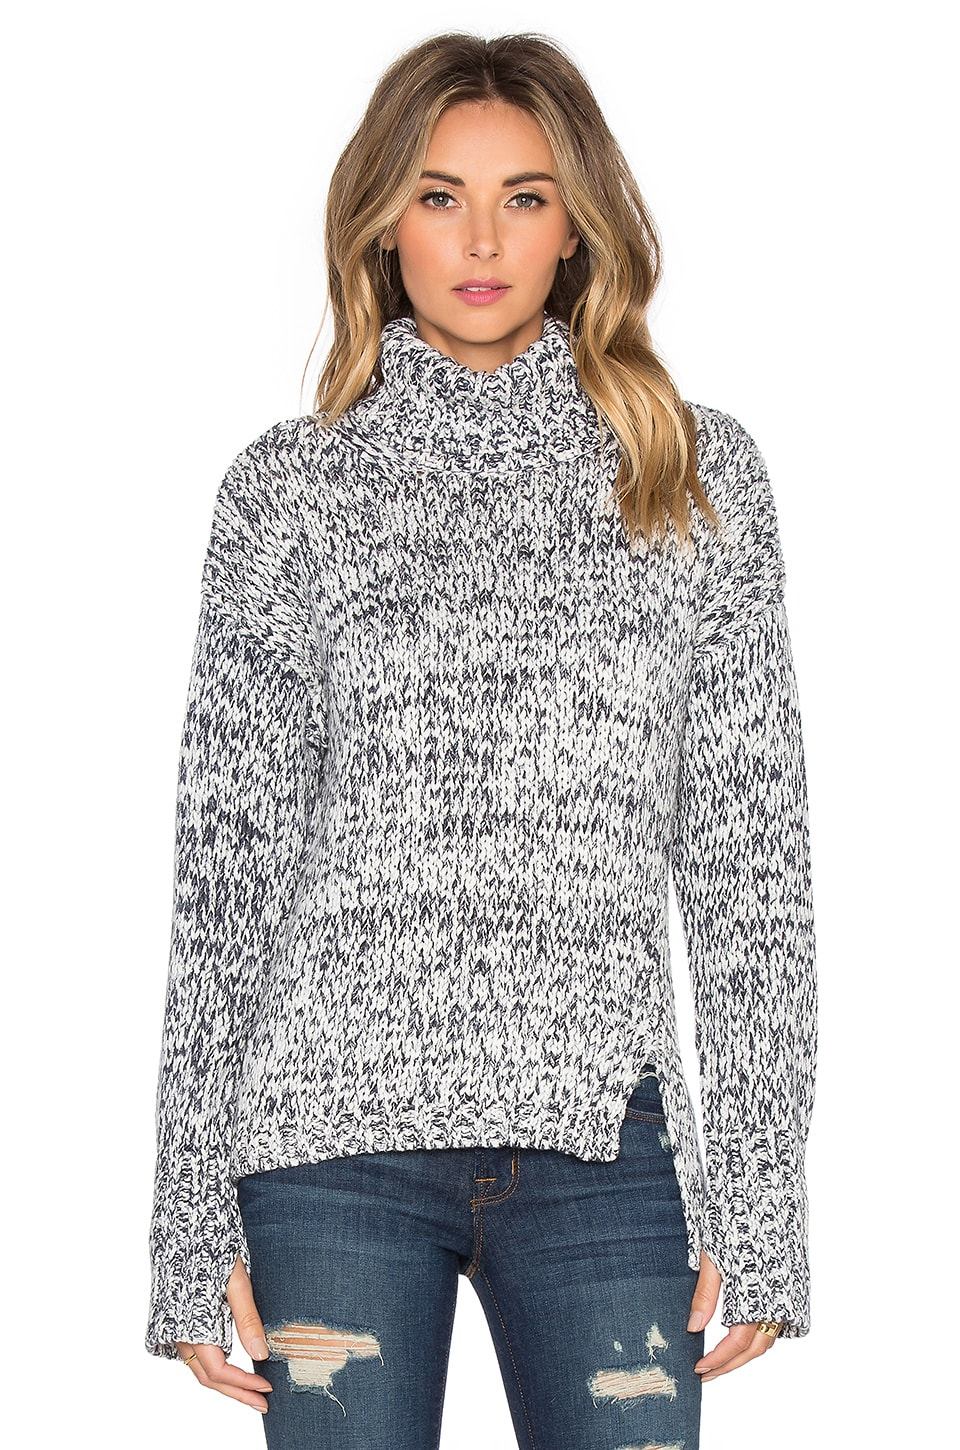 525 america Printed Tape Yarn Turtleneck Sweater in Black Combo